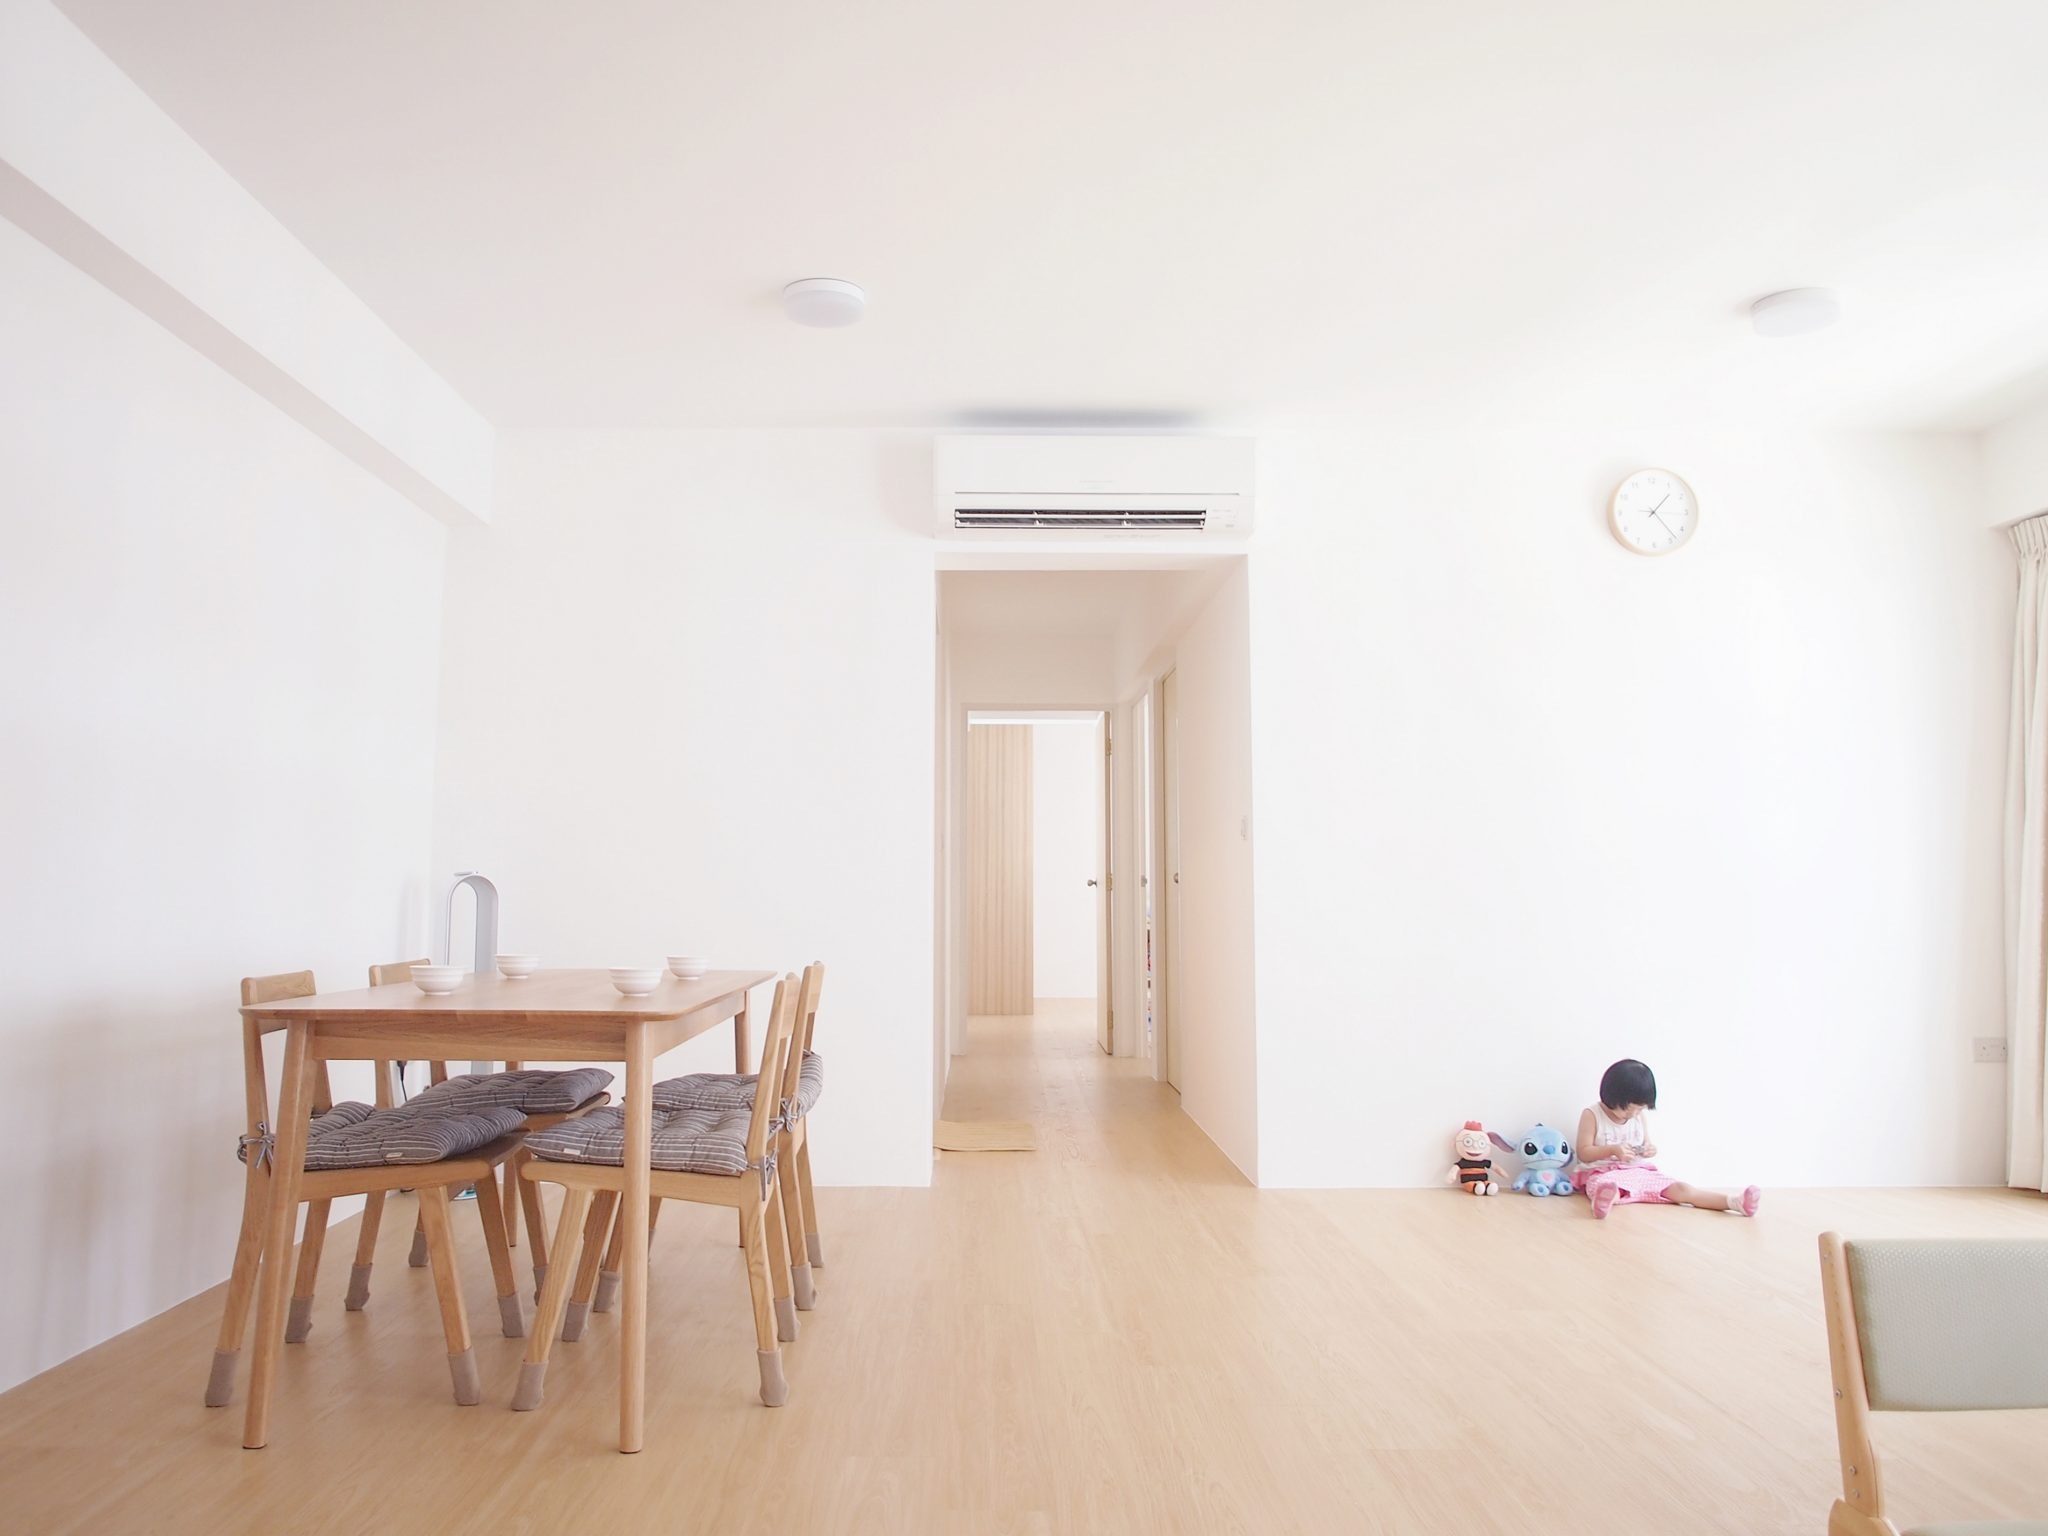 House Tour: Dave and Kate's Clean and Simple Minimalist ...